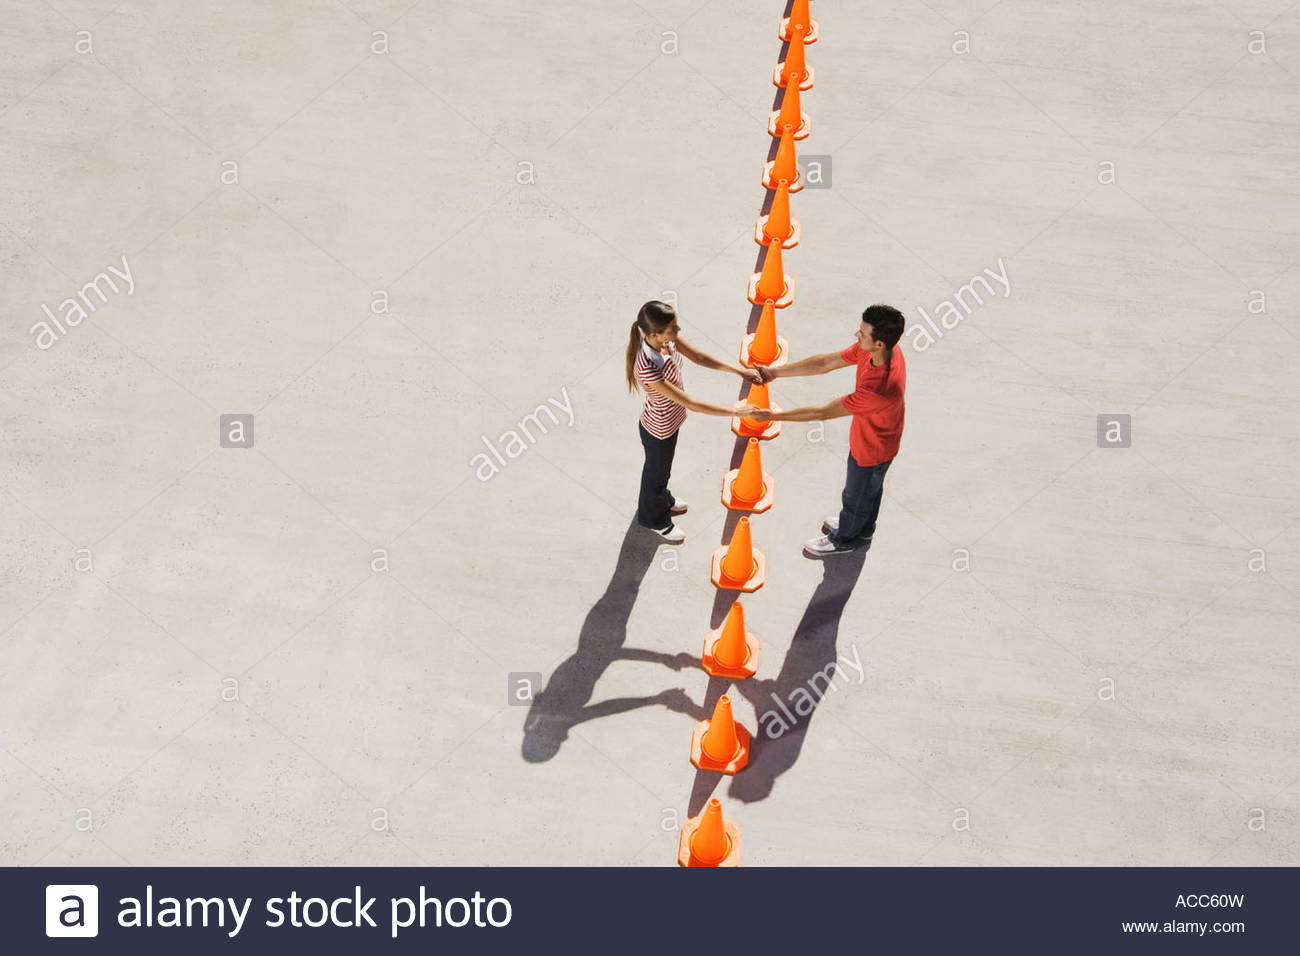 Man and woman holding hands over row of traffic cones - Stock Image